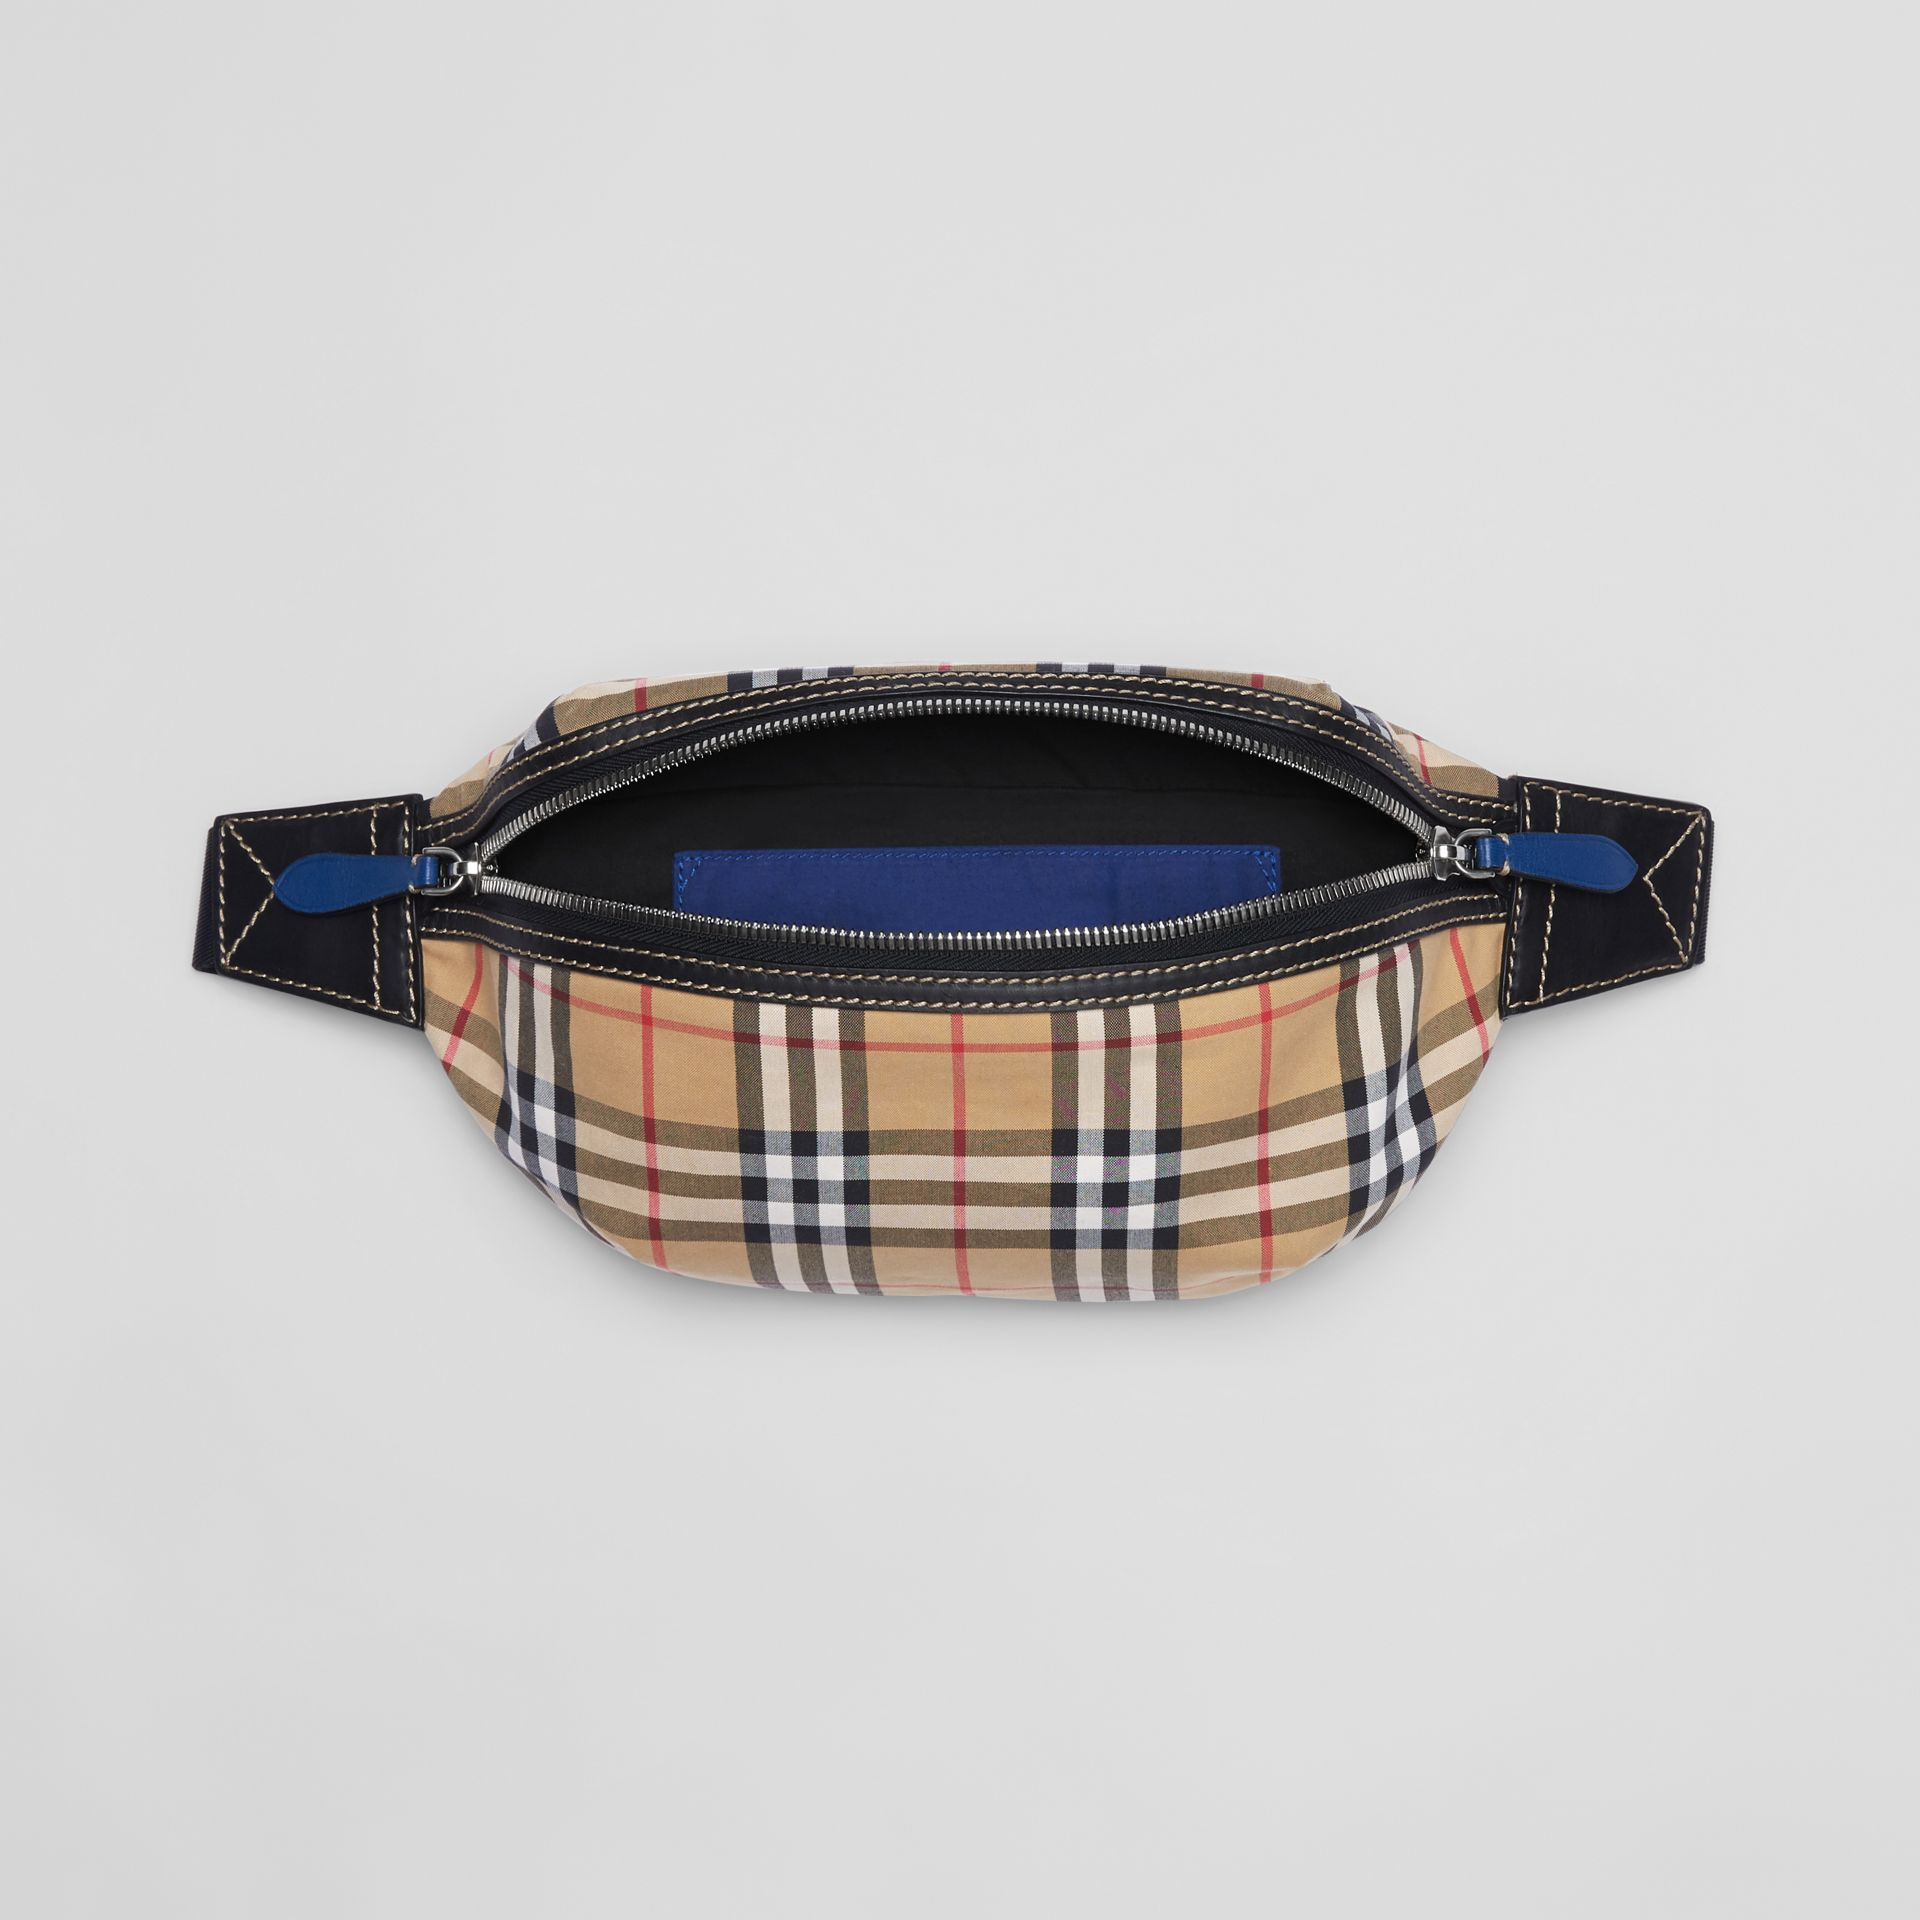 Medium Vintage Check Bum Bag in Canvas Blue - Men | Burberry Australia - gallery image 5